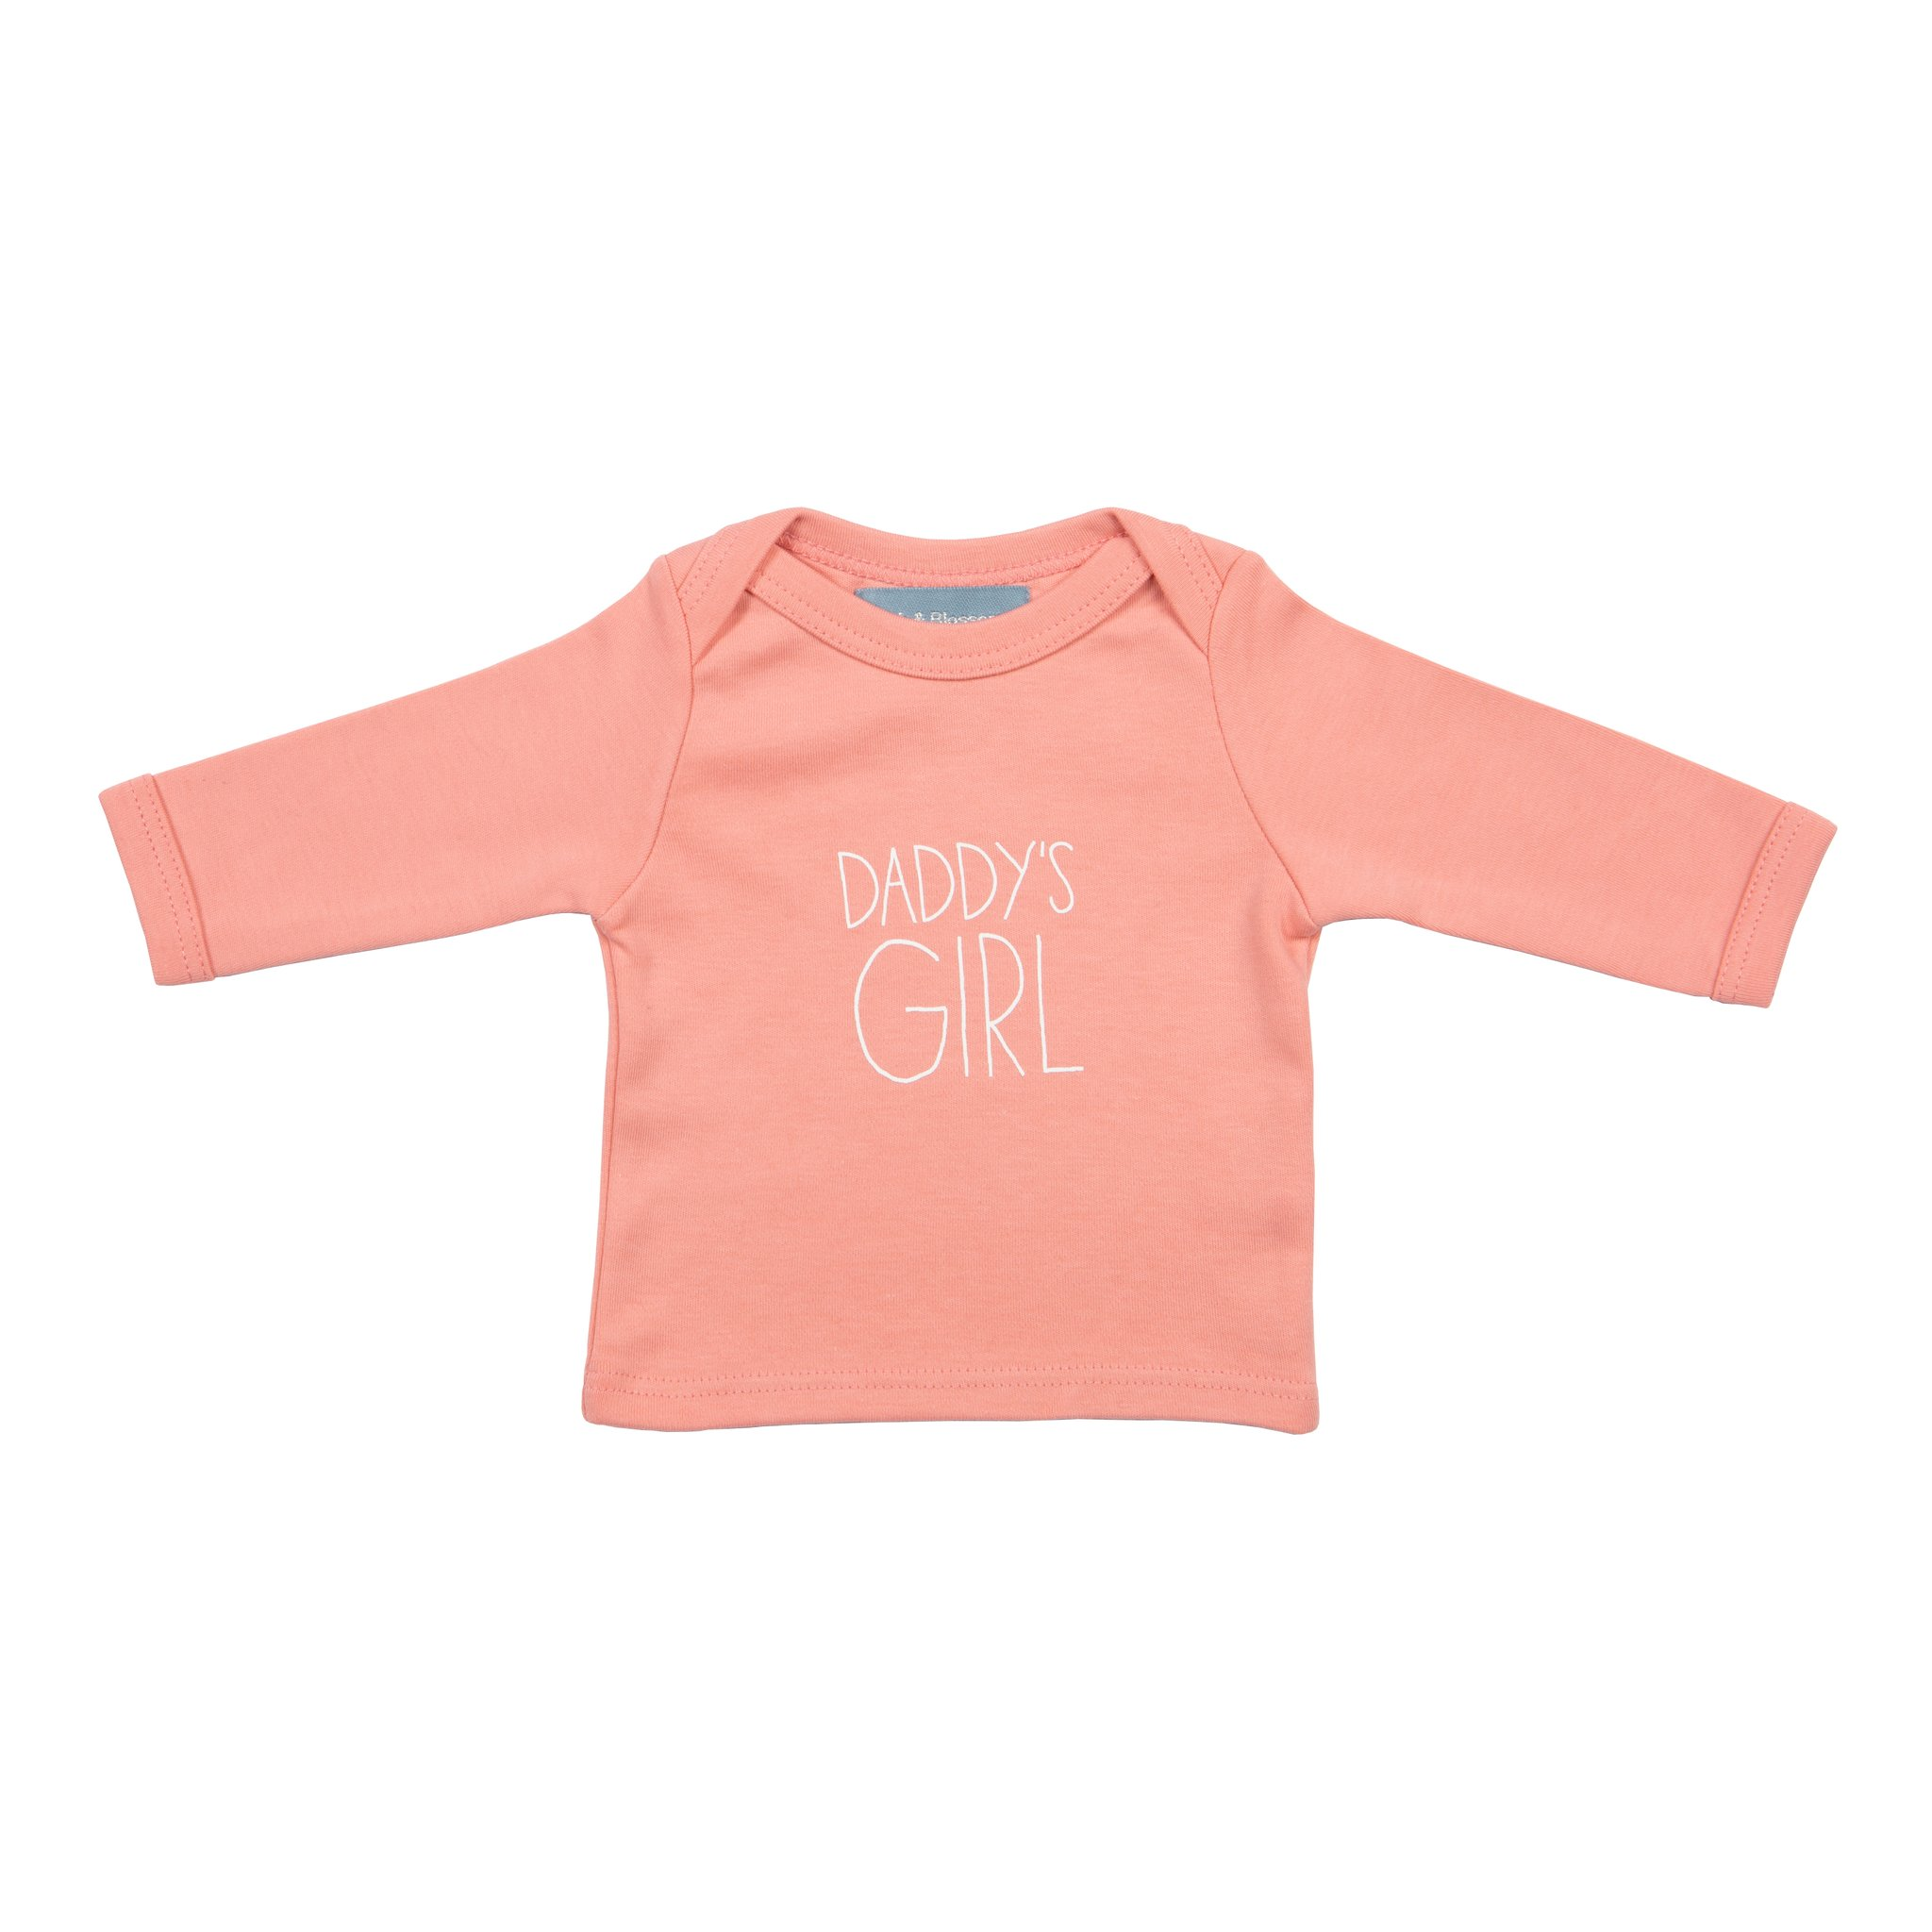 Bob & Blossom 'Daddy's Girl' Baby T Shirt - Blush Pink